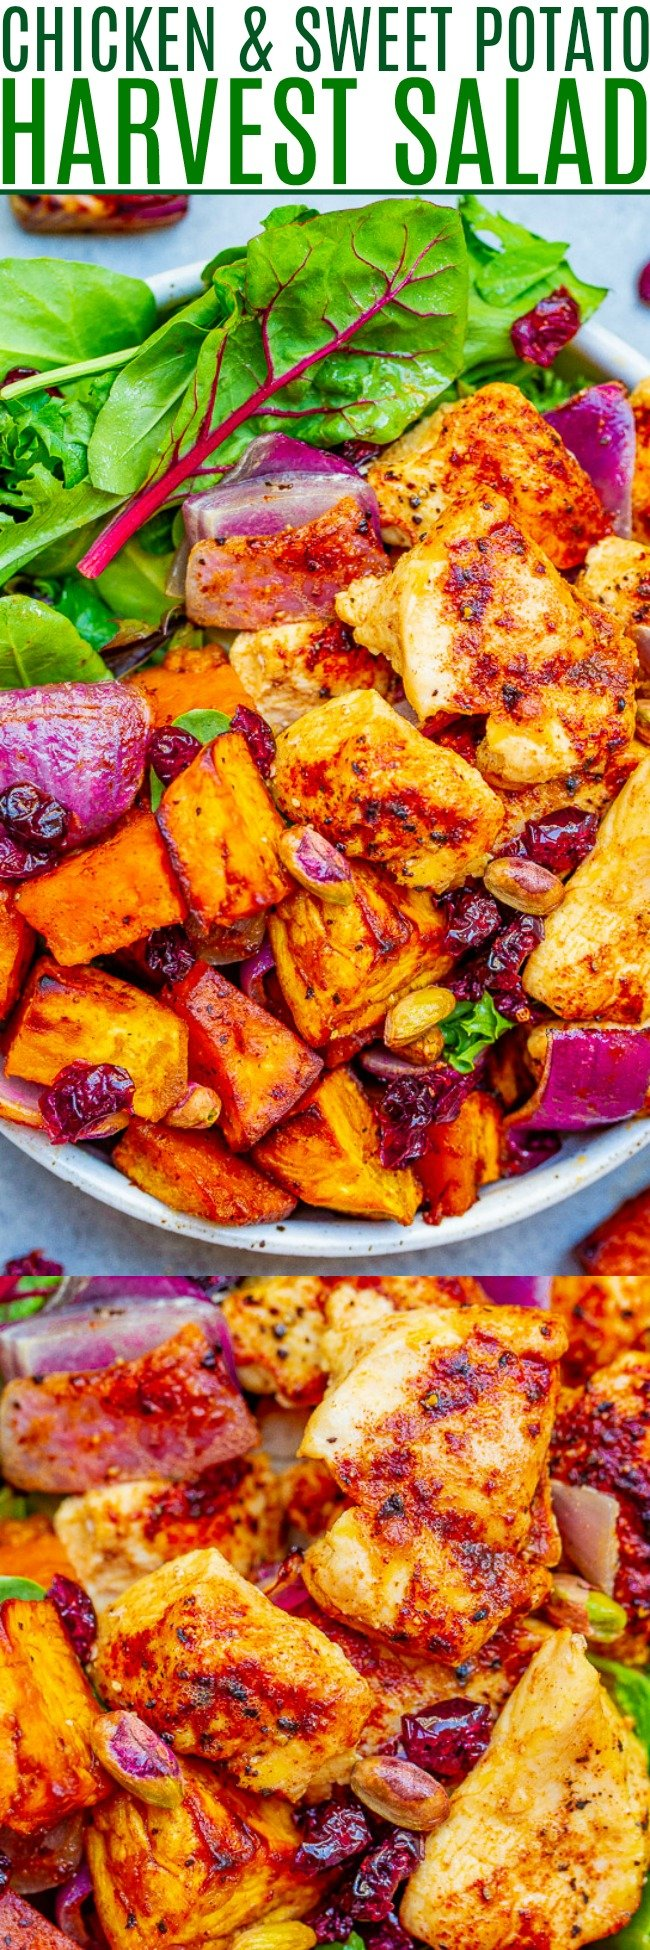 Roasted Chicken and Sweet Potato Harvest Salad - Fall-inspired ingredients including tender sweet potatoes, juicy chicken, red onions, cranberries, and pumpkin seeds topped with a honey apple cider vinaigrette!!  A HEARTY and COMFORTING salad that makes a big batch perfect for planned leftovers!!